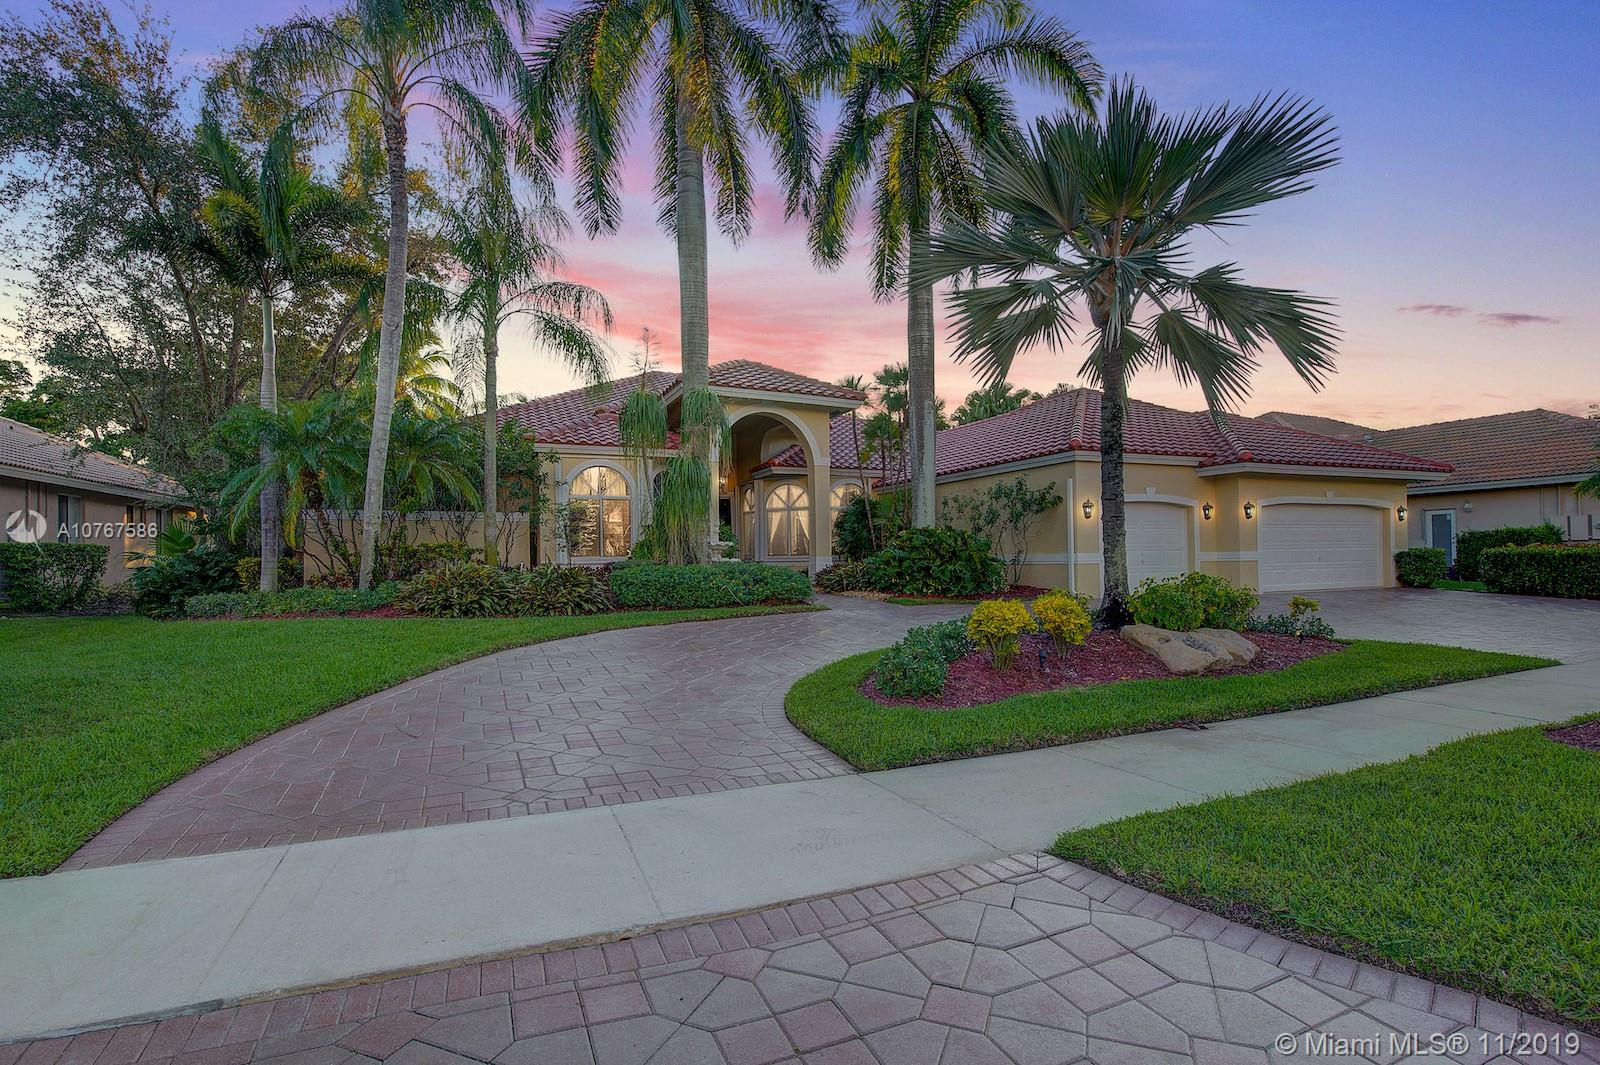 You are embraced by elegance as soon as you enter this custom designed one story pool estate home boasting 5 bedrooms, 4.5 bathrooms +Library/Office & a 3 car garage! BRAND NEW ROOF JUST MONTHS OLD!! Gorgeous pool & tranquil waterfall views as soon as you enter the property sets the stage for the grand foyer! Freshly painted interior & exterior! This home shows complete pride of ownership. Meticulously maintained with high end custom design touches throughout the home. High ceilings, crown molding, marble flooring and luxurious finishes. Chefs kitchen! Fantastic backyard with an outdoor terrace and grill/summer kitchen area. Located in the prestigious gated community of Weston Hills Country Club. Excellent location near major highways, restaurants, shopping, top rated schools and more!